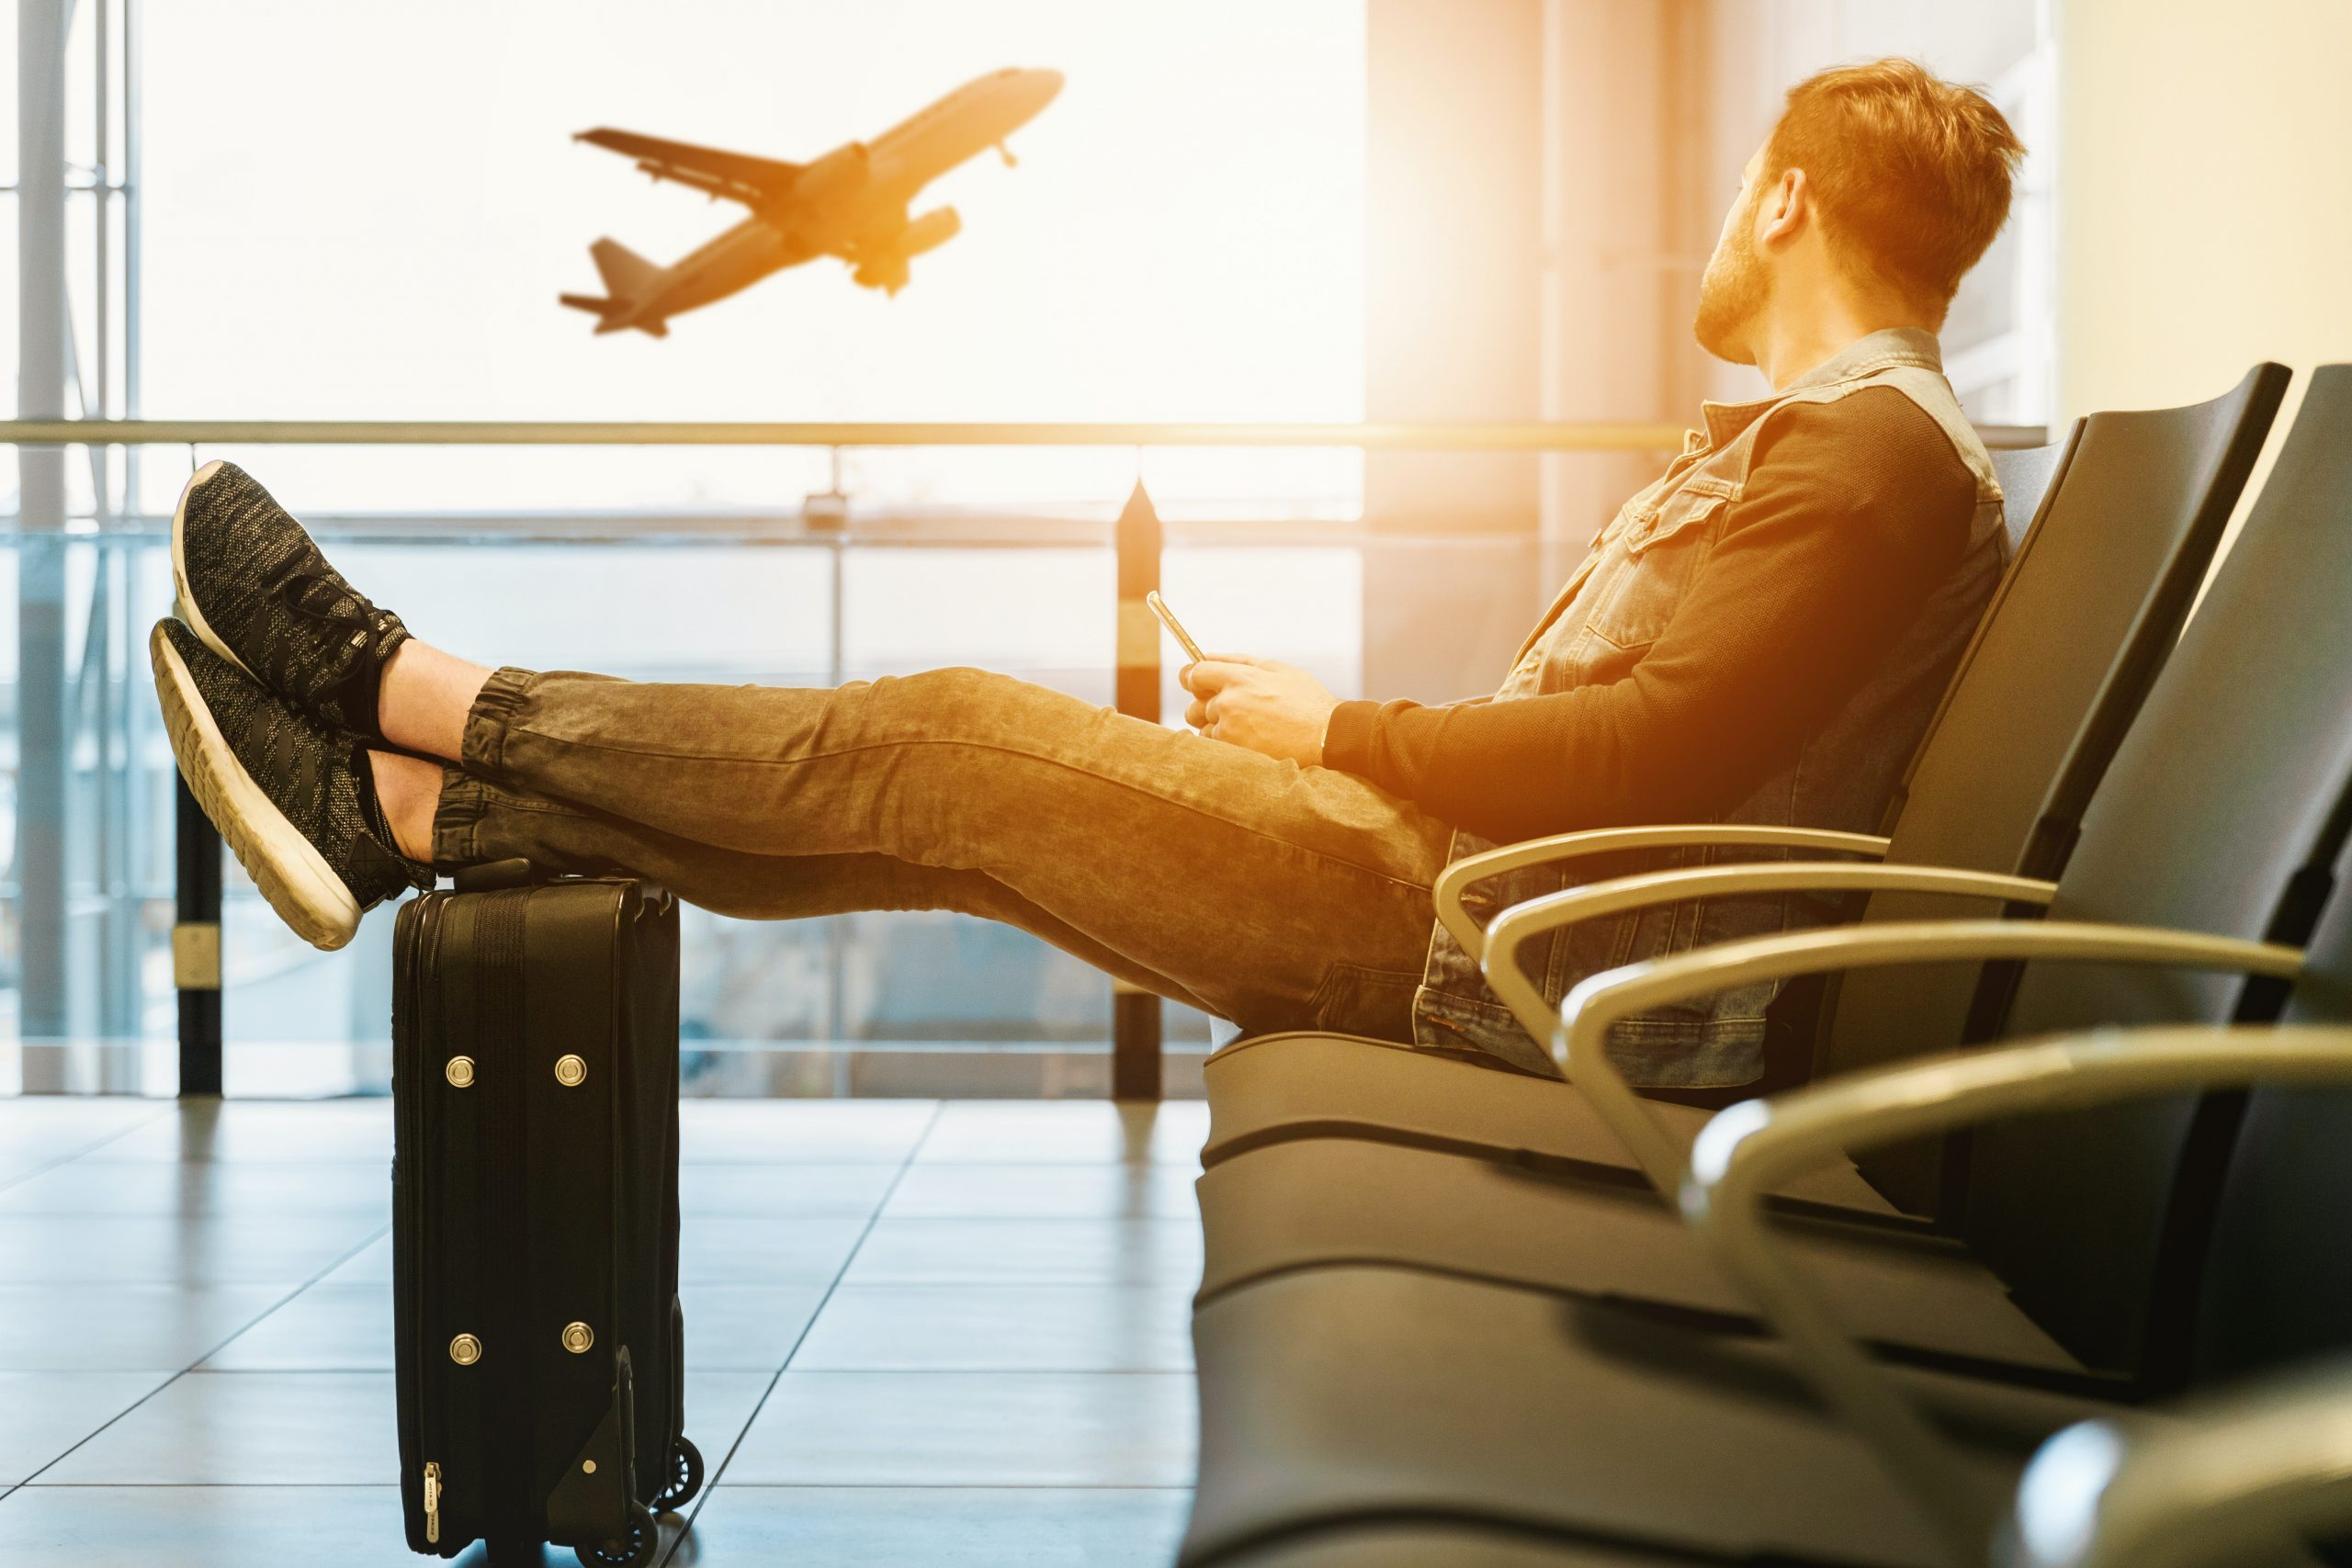 in article about getting a degree and travel, person in airport